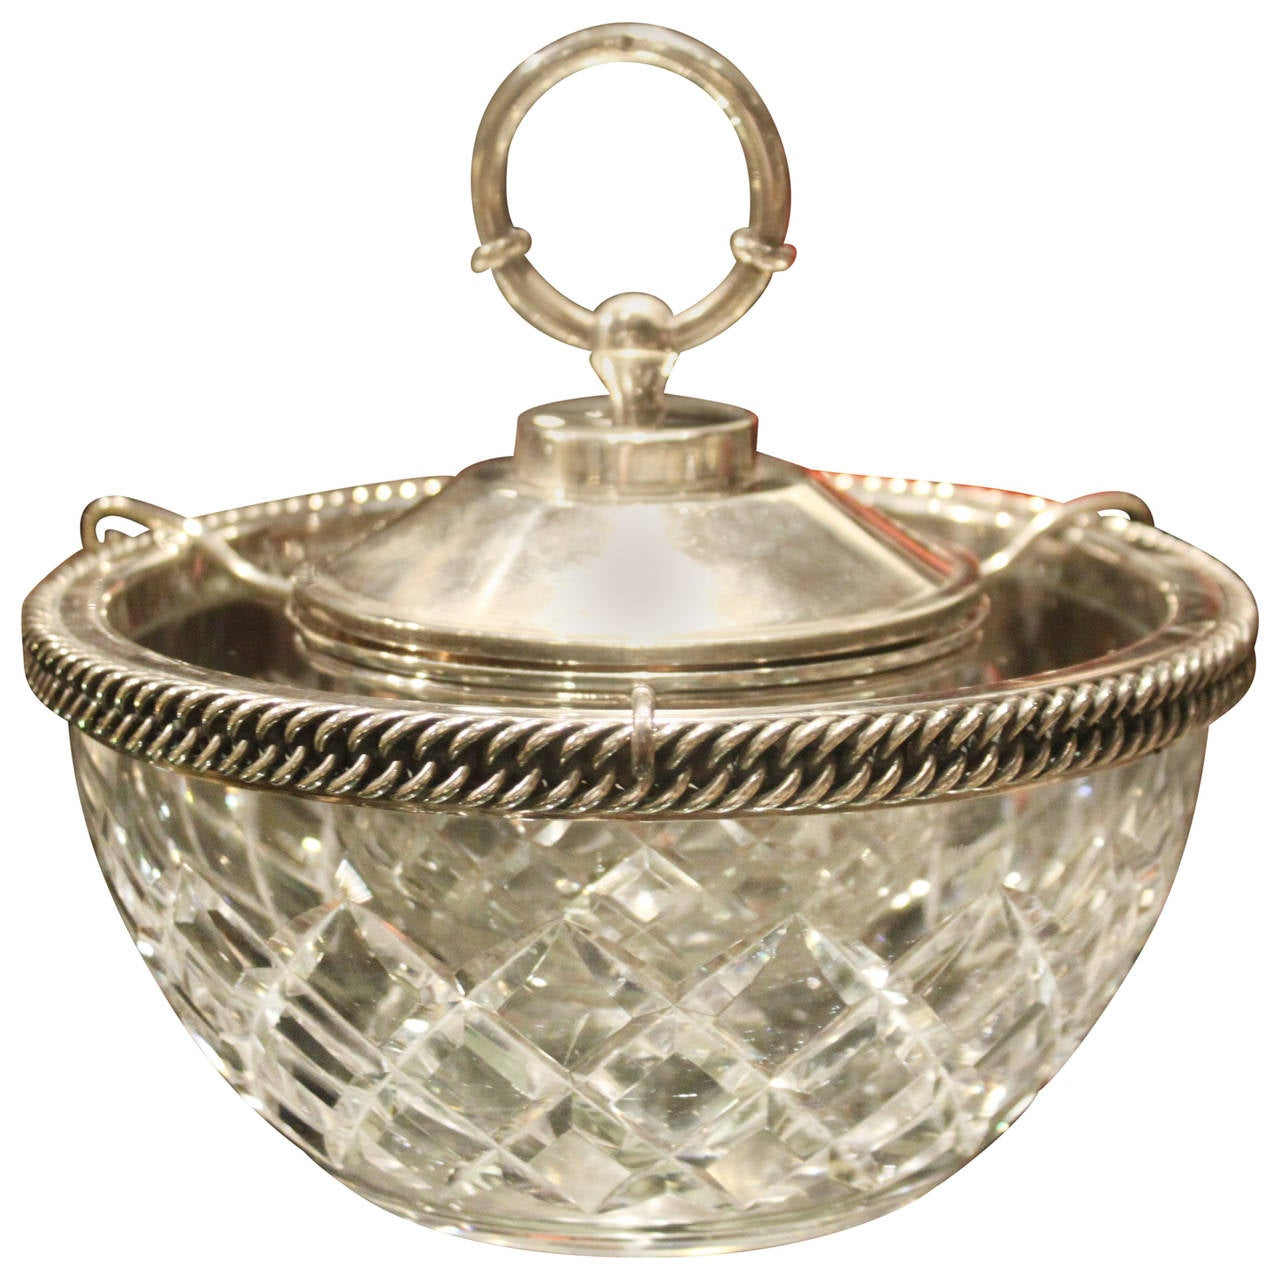 Hermès Sterling and Baccarat Crystal Caviar Service 1